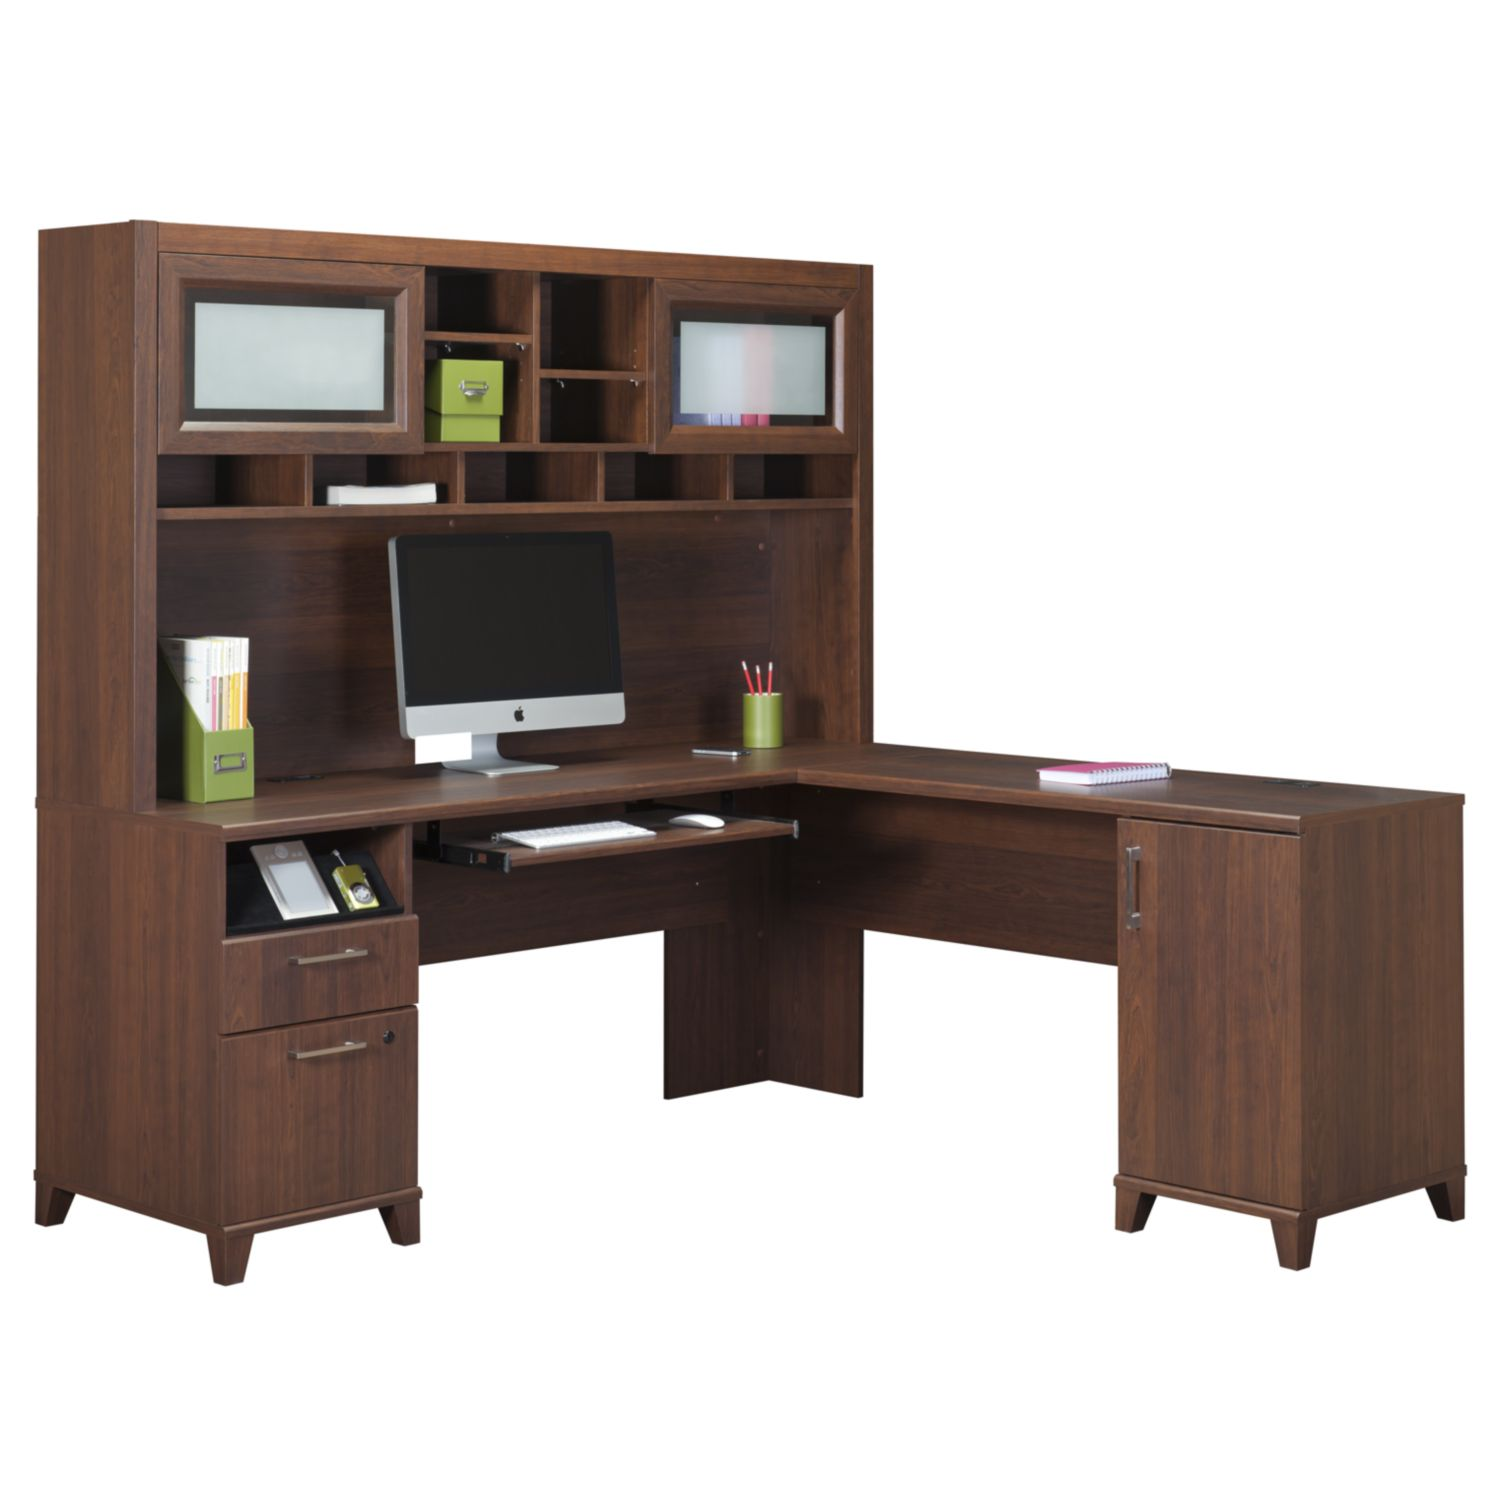 Beautiful Mainstays L Shaped Desk with hutch in brown plus computer set for home office furniture ideas